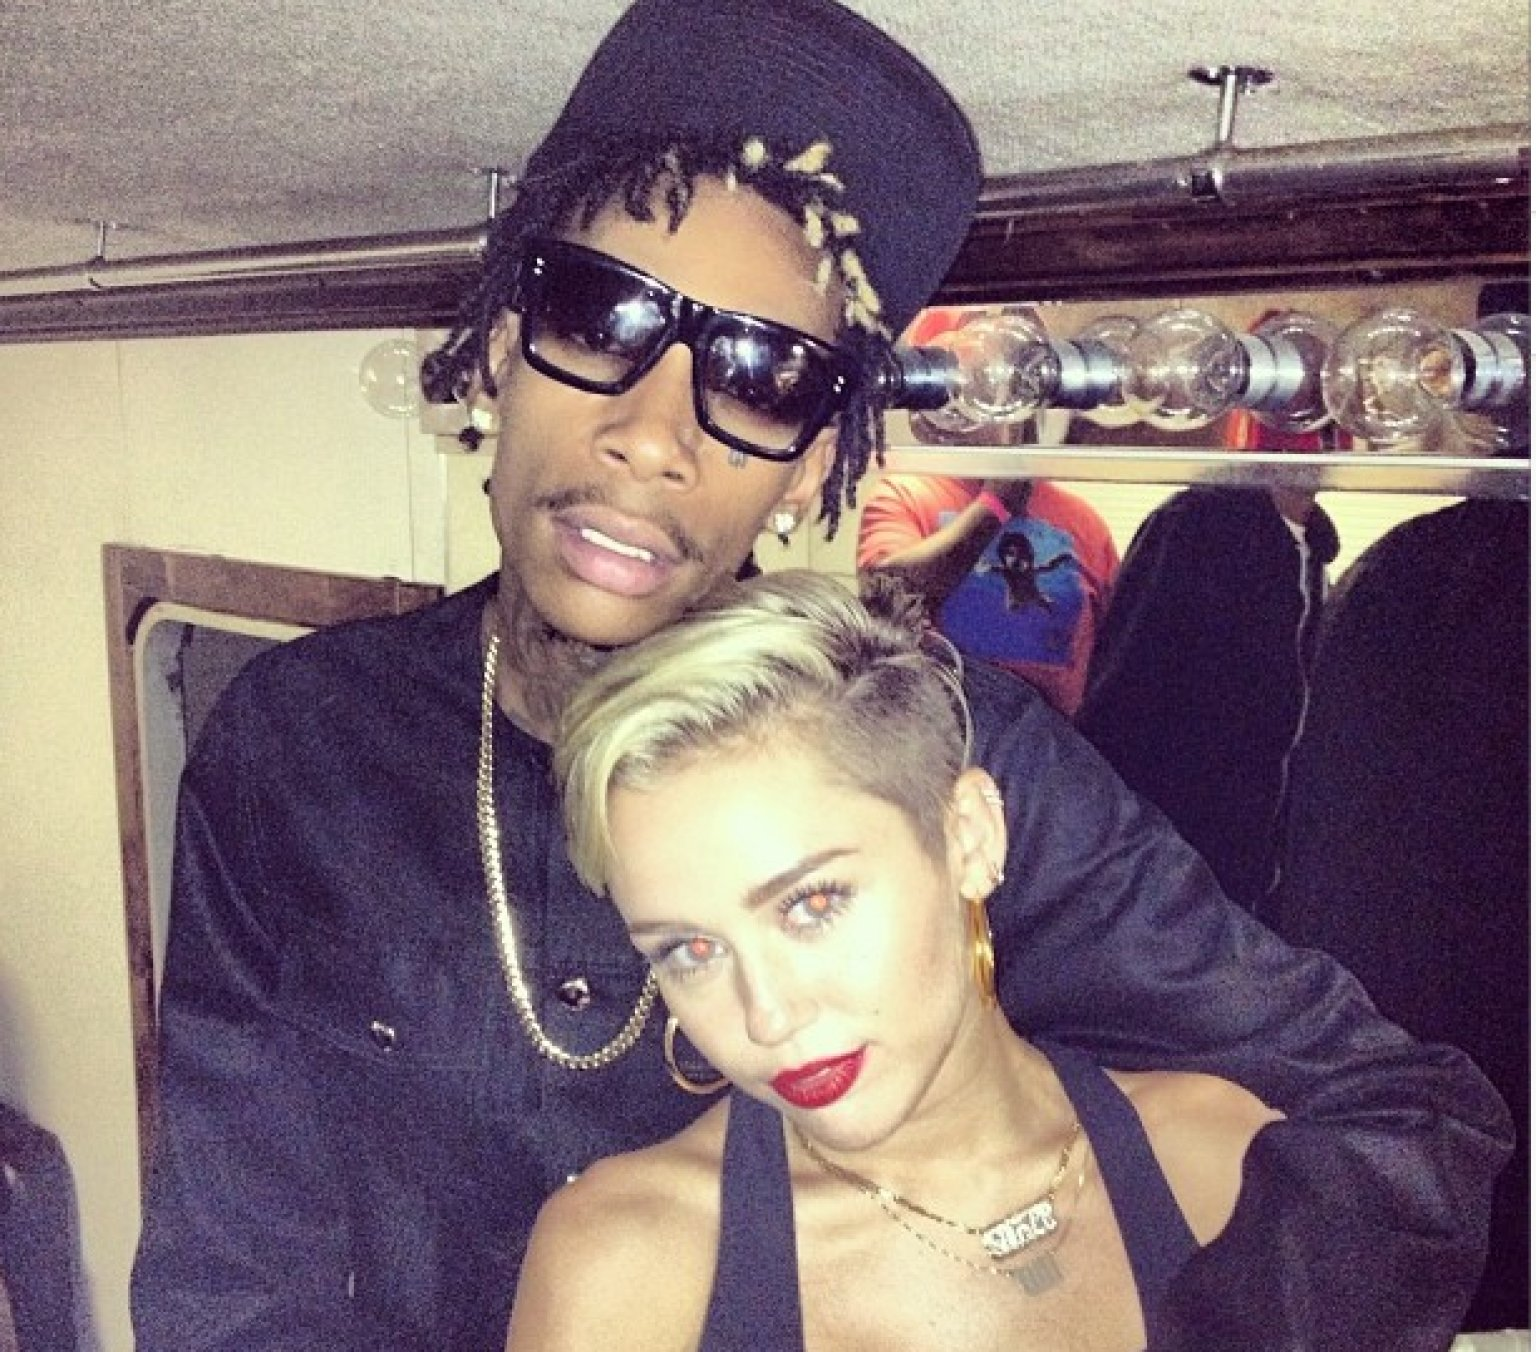 Pictures of wiz khalifa pictures of celebrities - Pictures Of Wiz Khalifa Pictures Of Celebrities 52